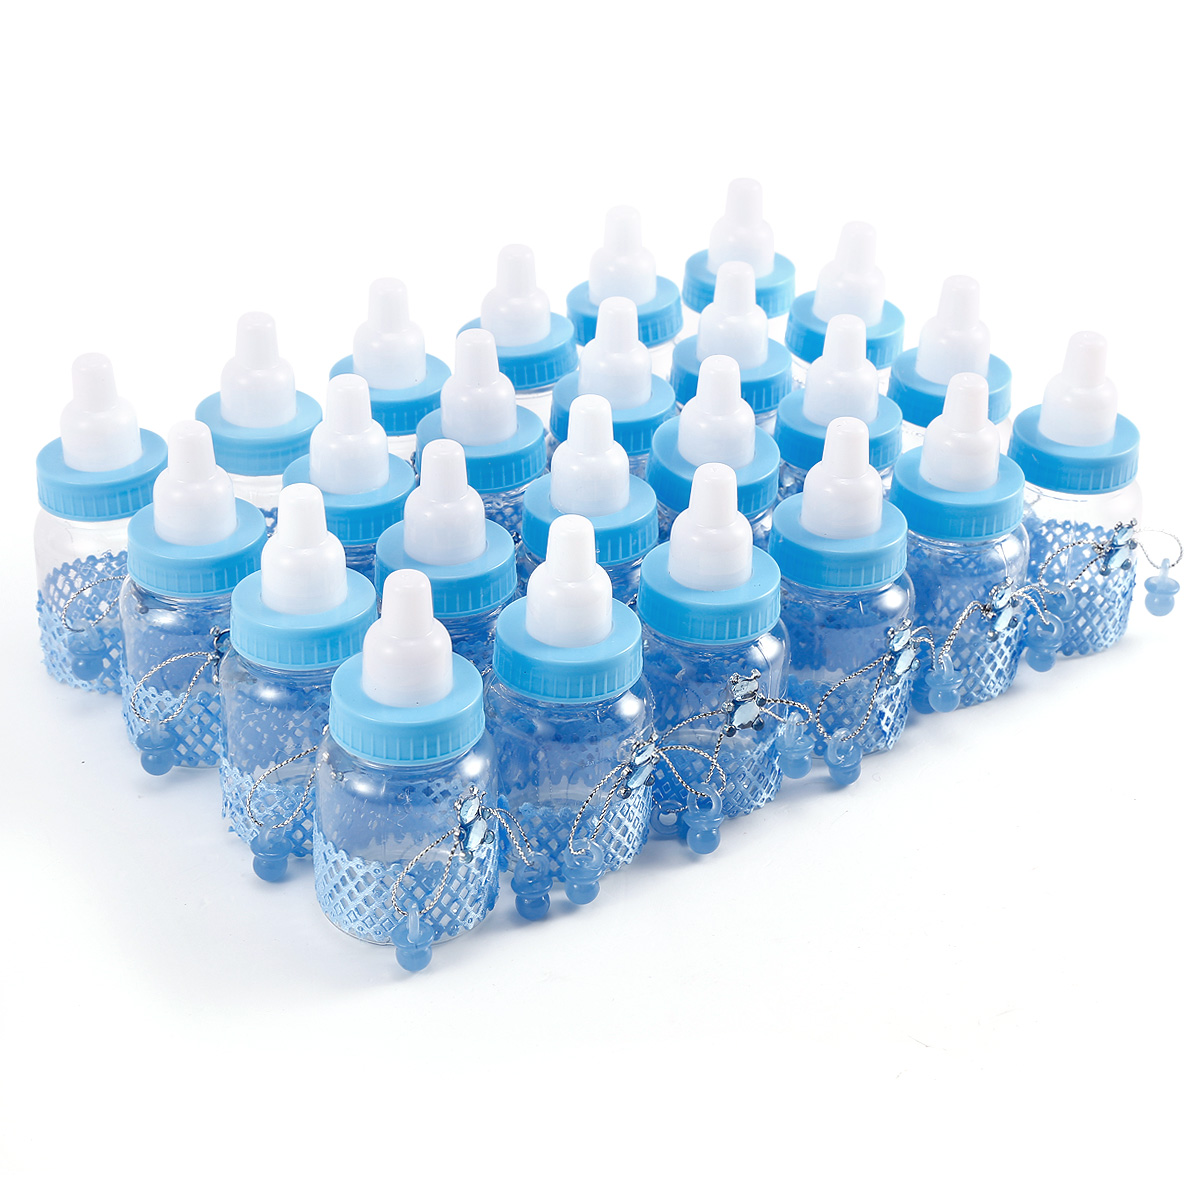 24er blau b r schnuller milchflasche babyflasche taufe geburt deko gastgeschenk ebay. Black Bedroom Furniture Sets. Home Design Ideas